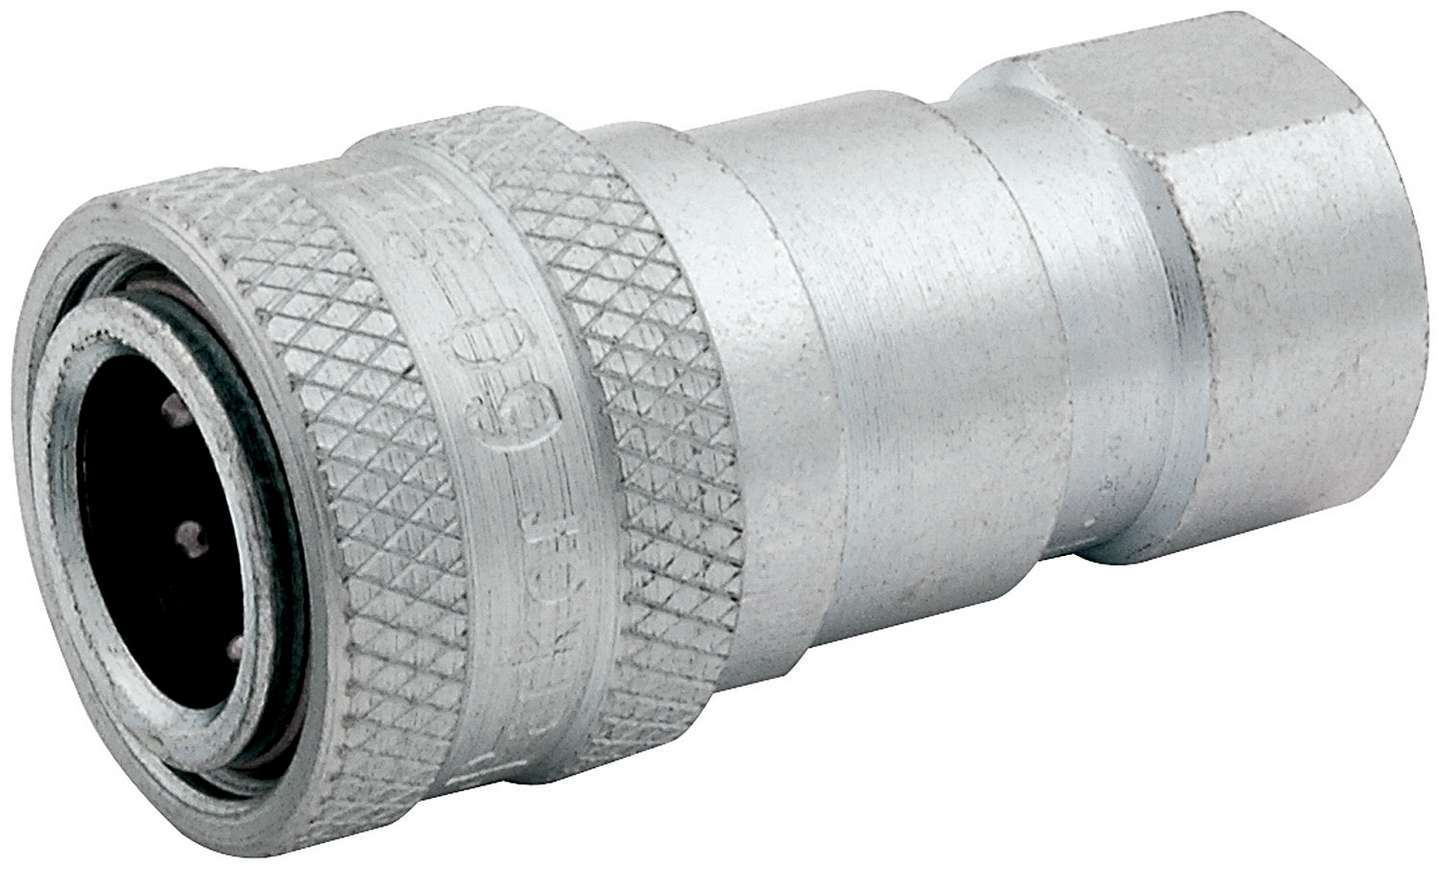 Allstar Performance 50217 Fitting, Quick Disconnect, Female Half to 1/8 in NPT Female, Steel, Zinc Plated, Each